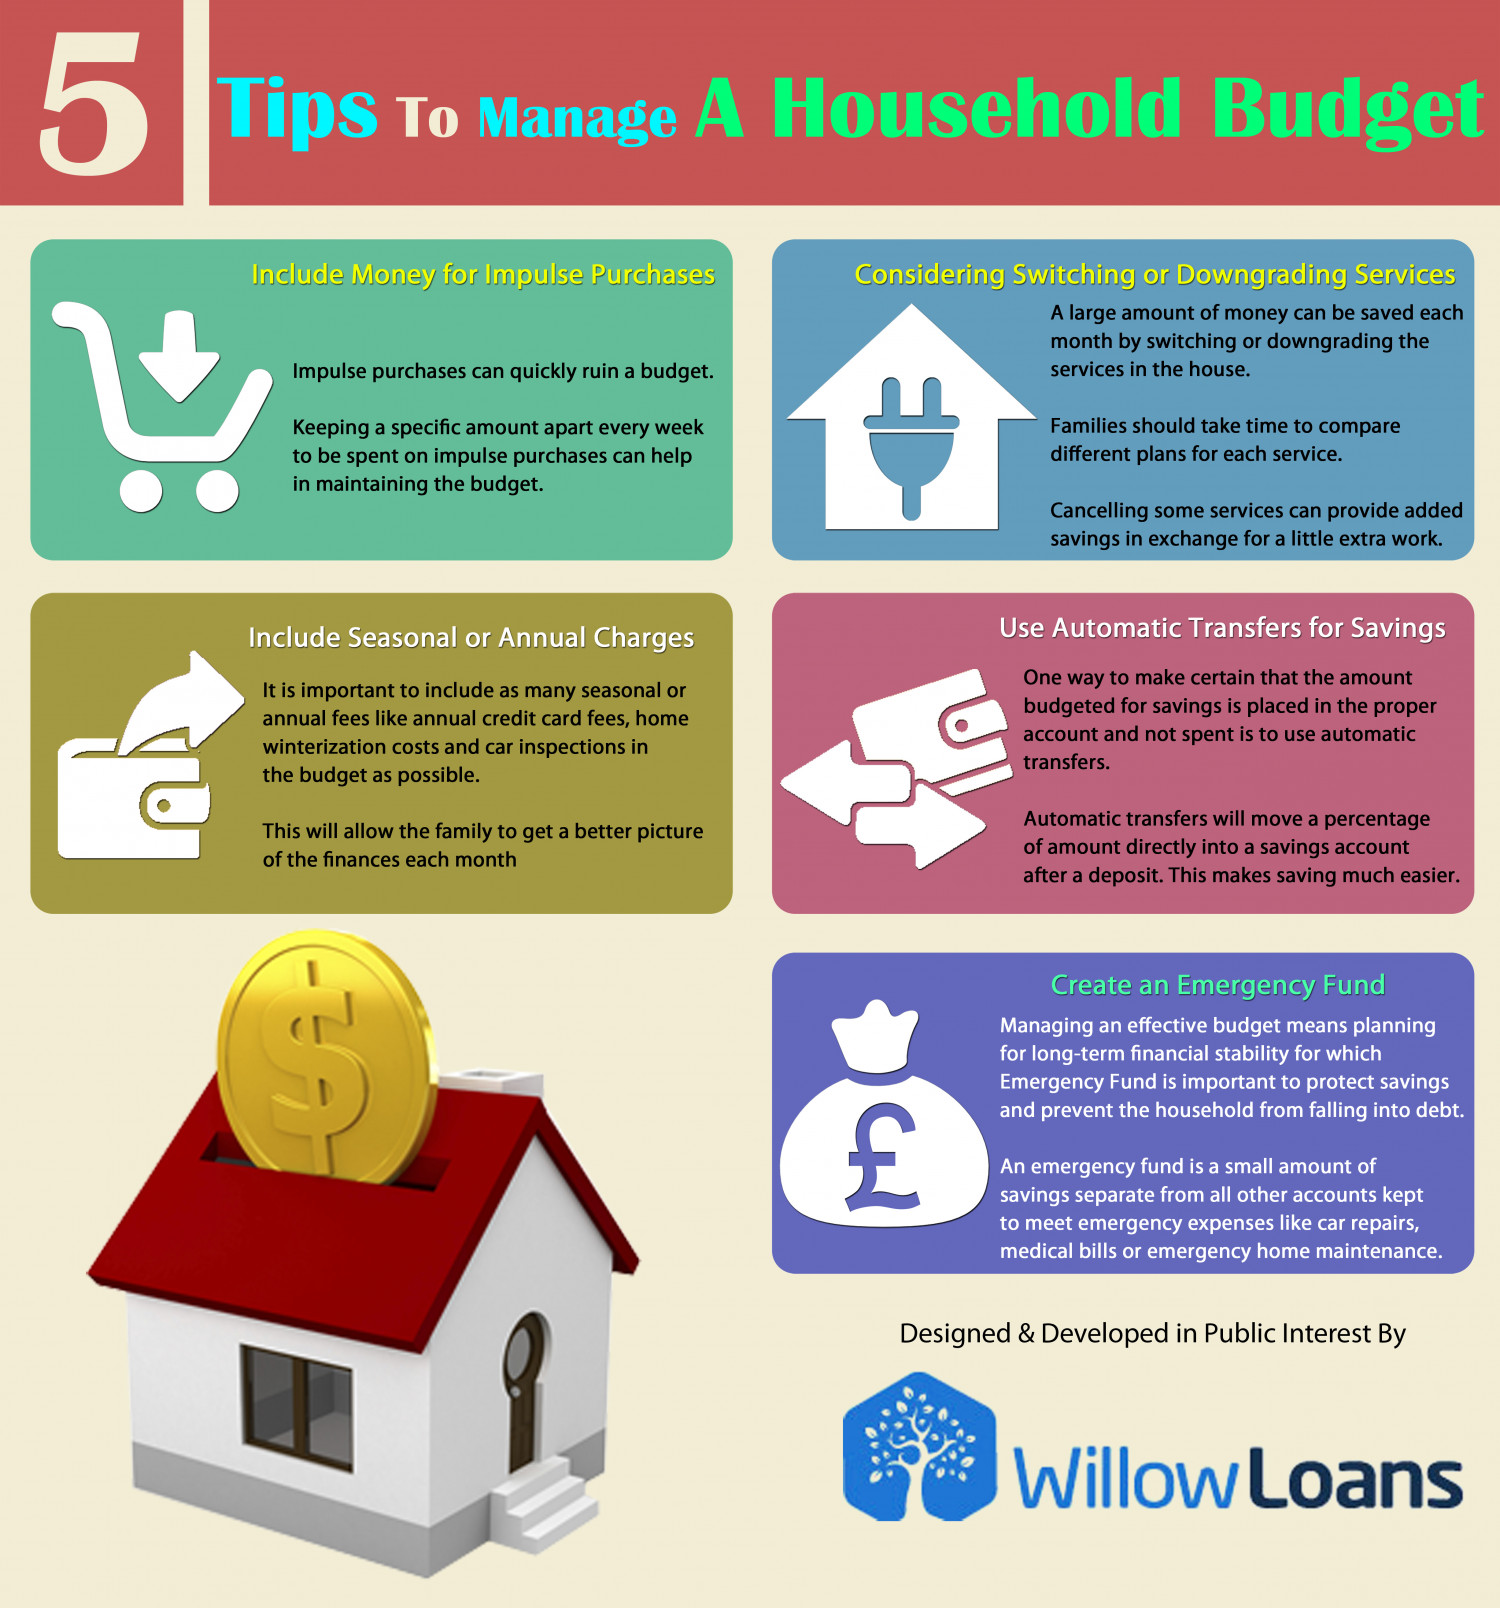 5 Tips To Manage A Household Budget Infographic